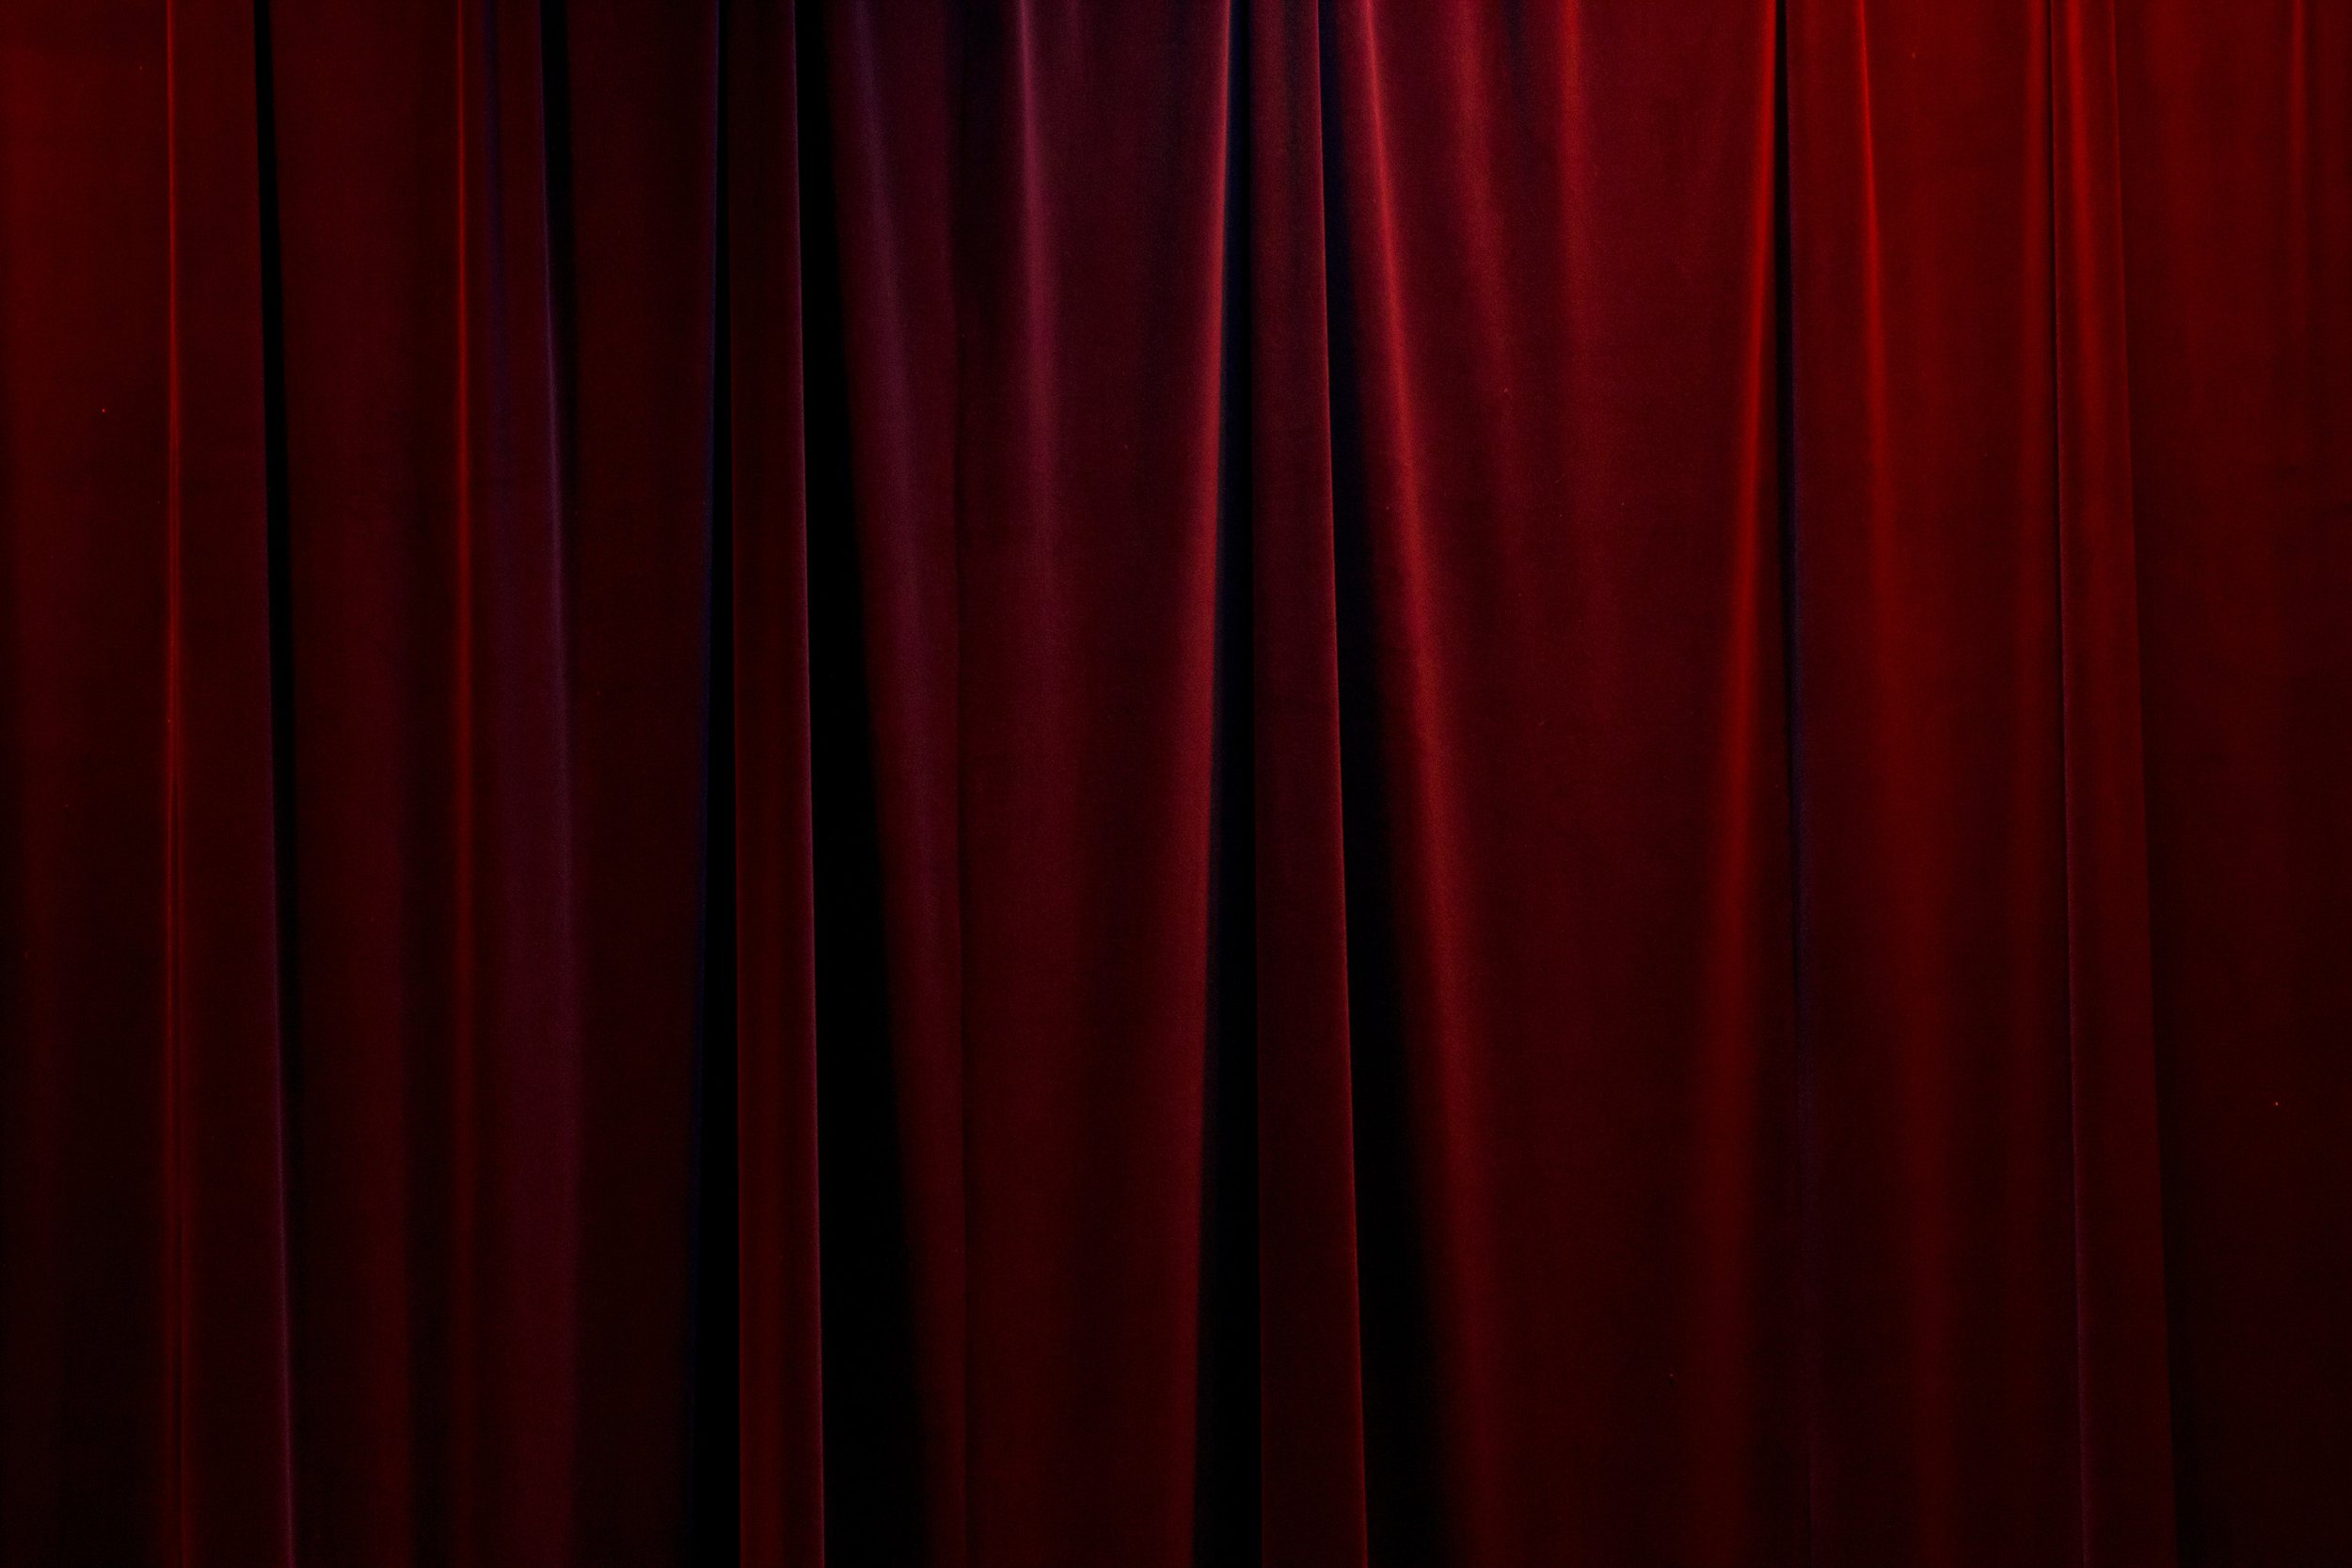 Real Red Velvet Curtain : red velvet curtain from wwwsendme.us size 2500 x 1667 jpeg 245kB